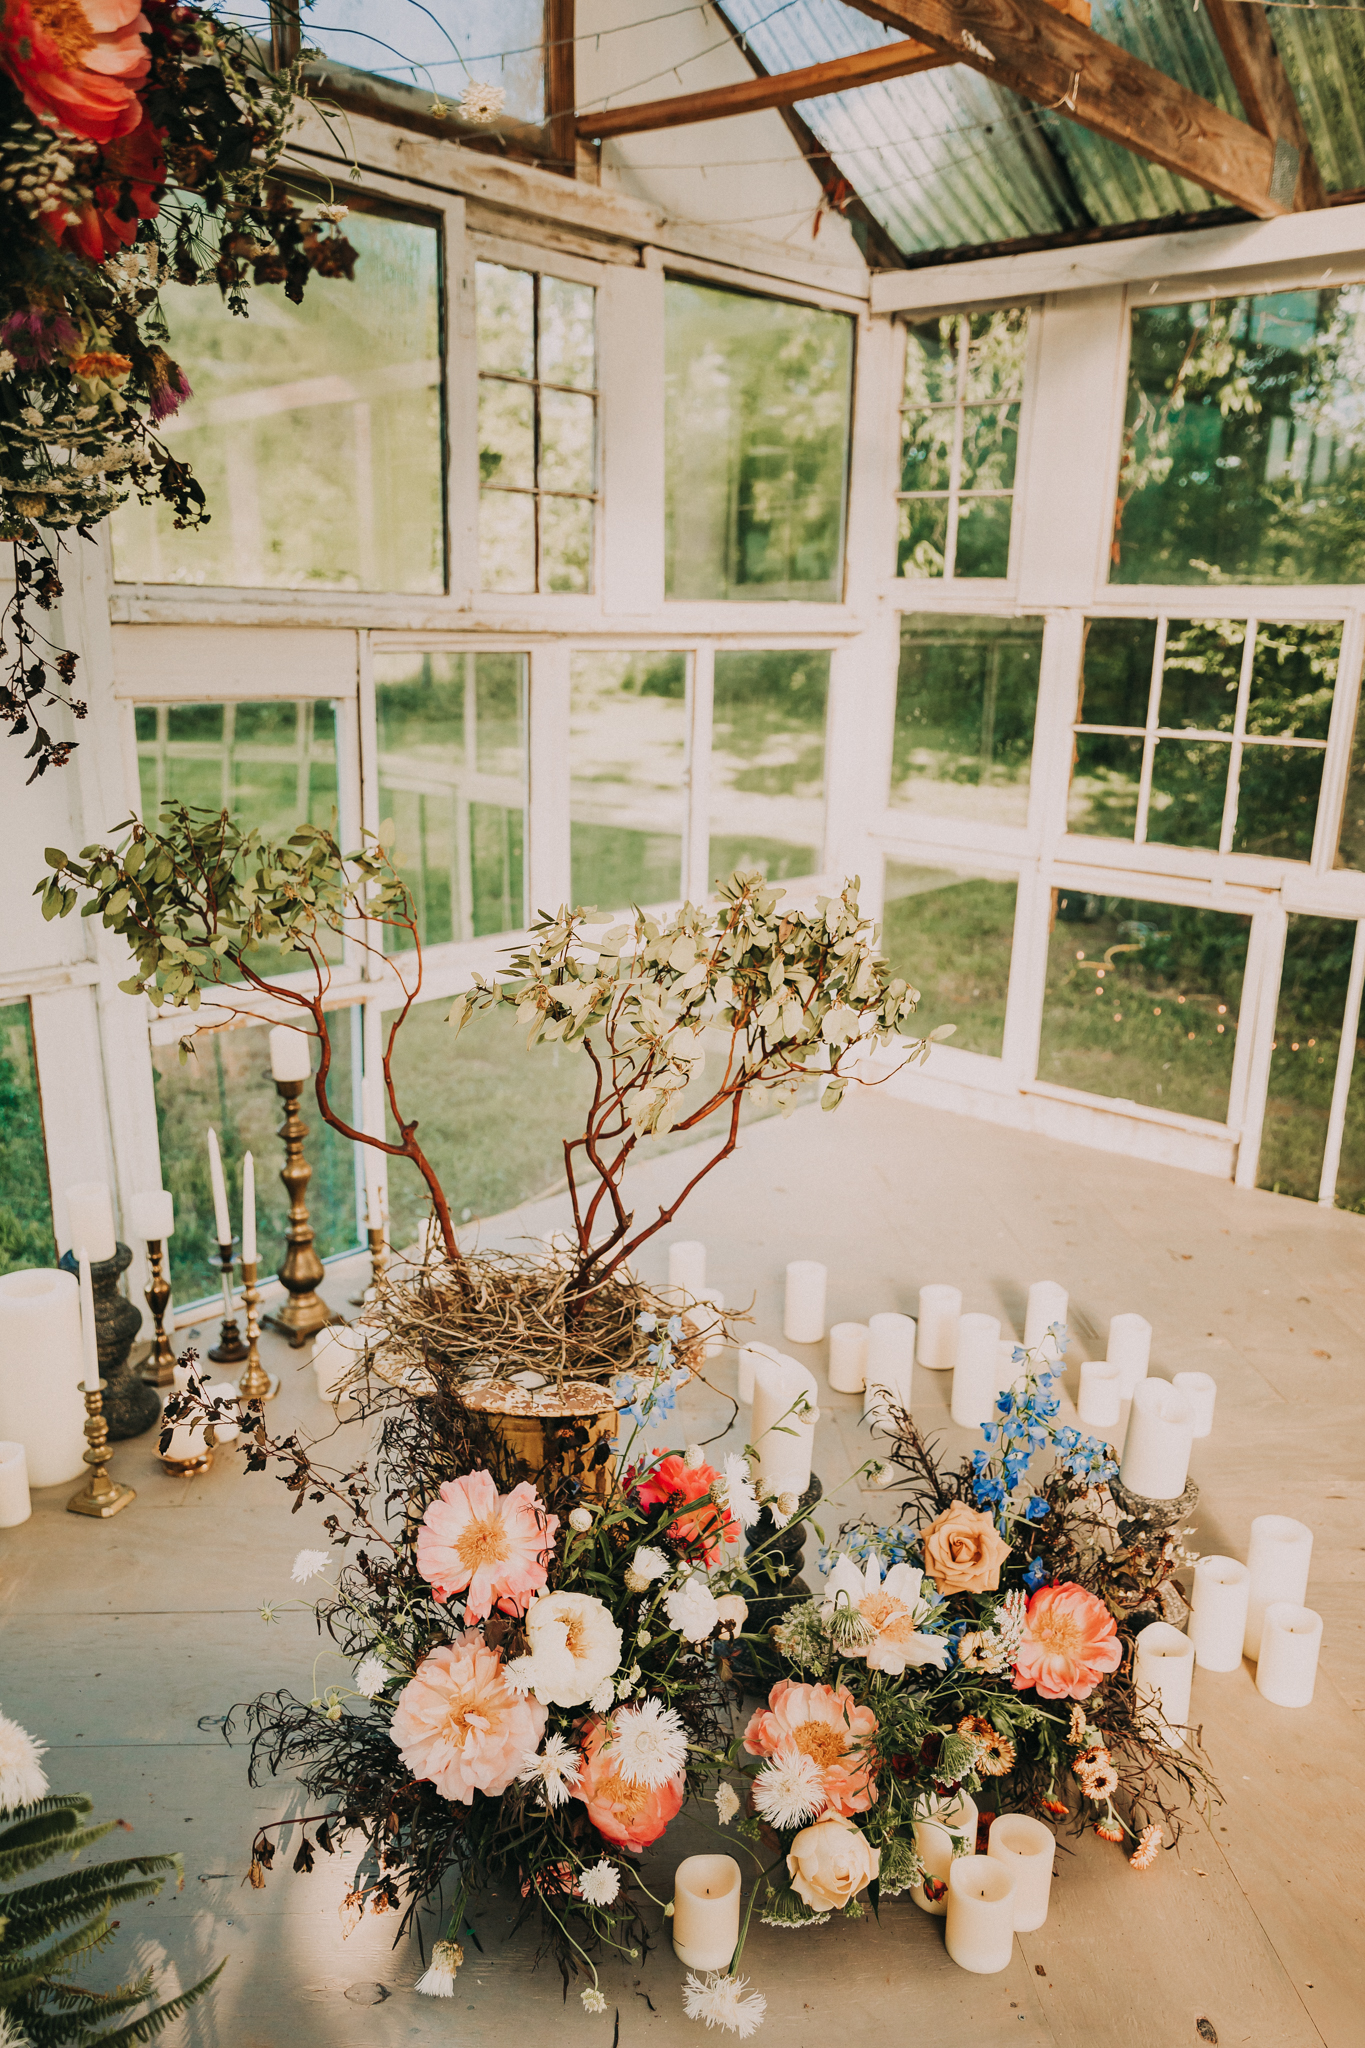 Floral wedding ceremony decor: Flower Farm Styled Shoot by Billie-Shaye Style featured on Nashville Bride Guide